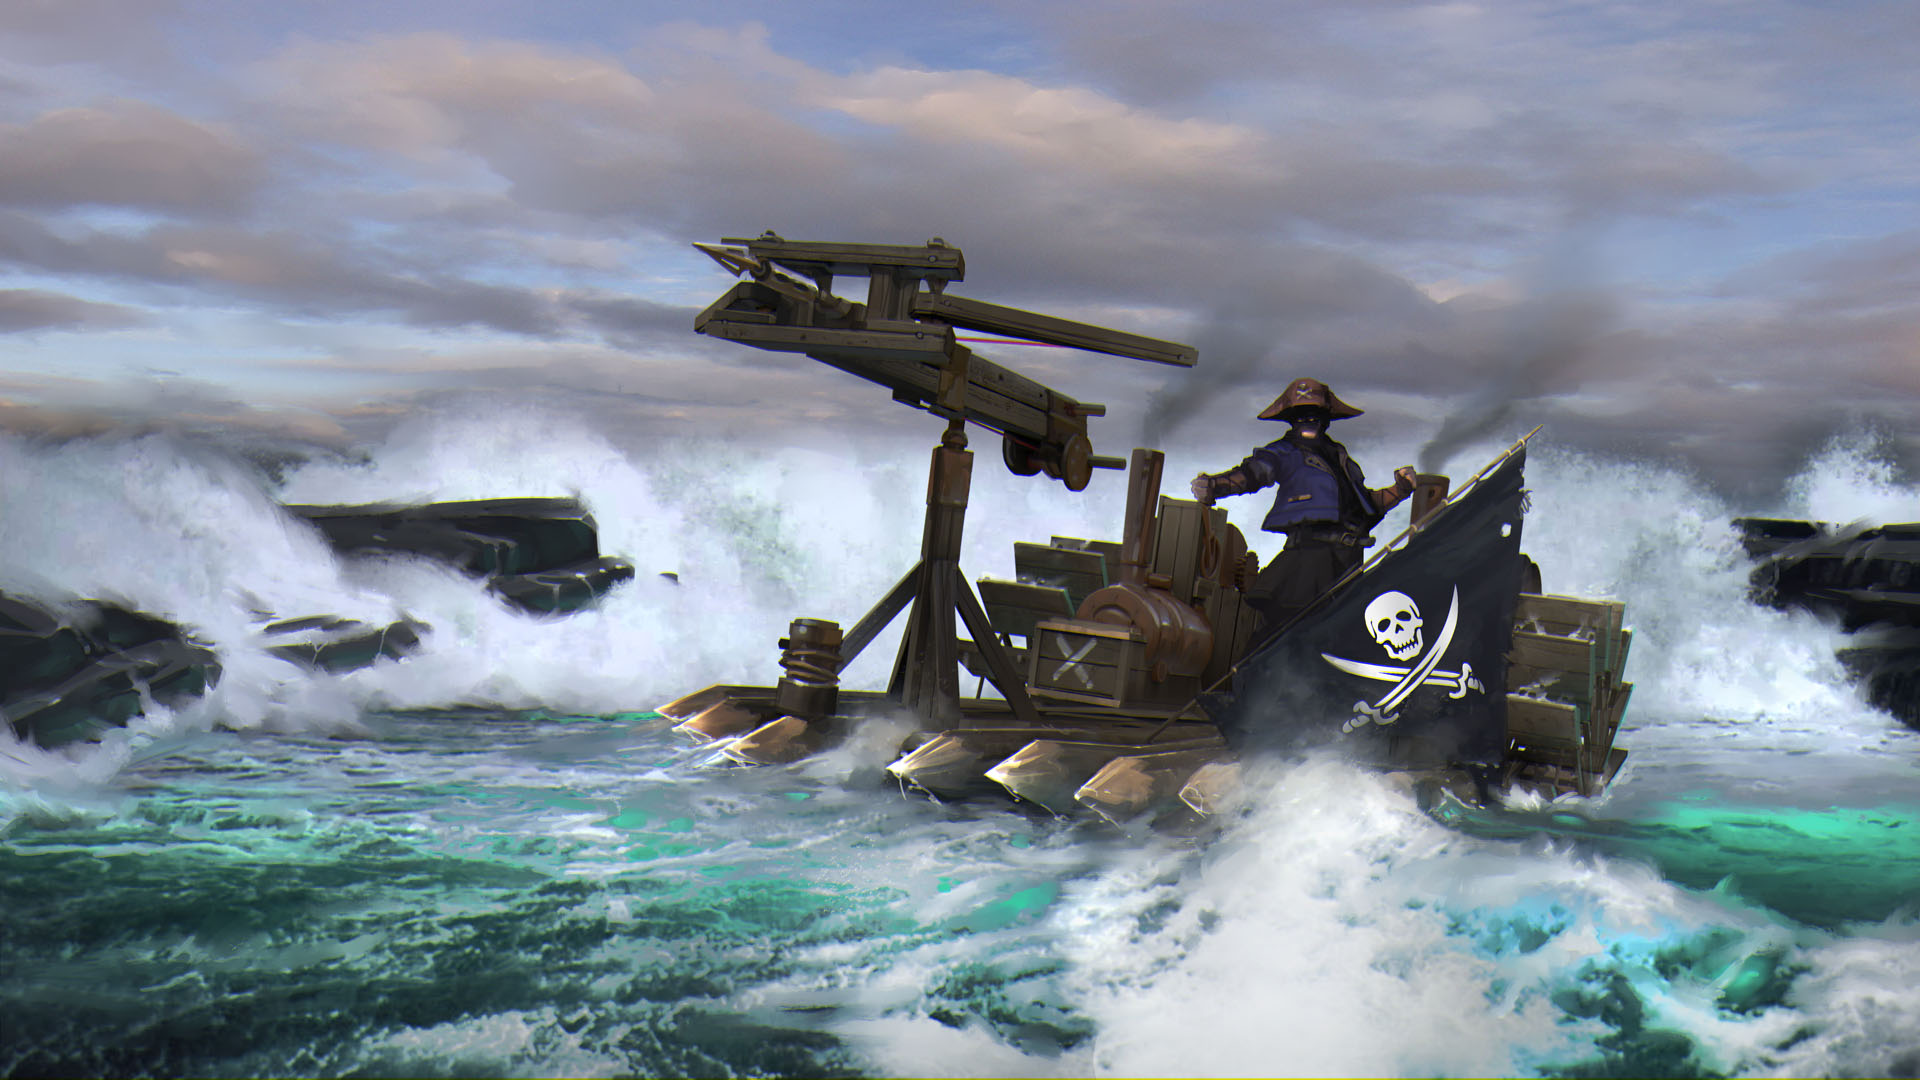 Pirate raft Wallpaper from Out of Reach gamepressurecom 1920x1080